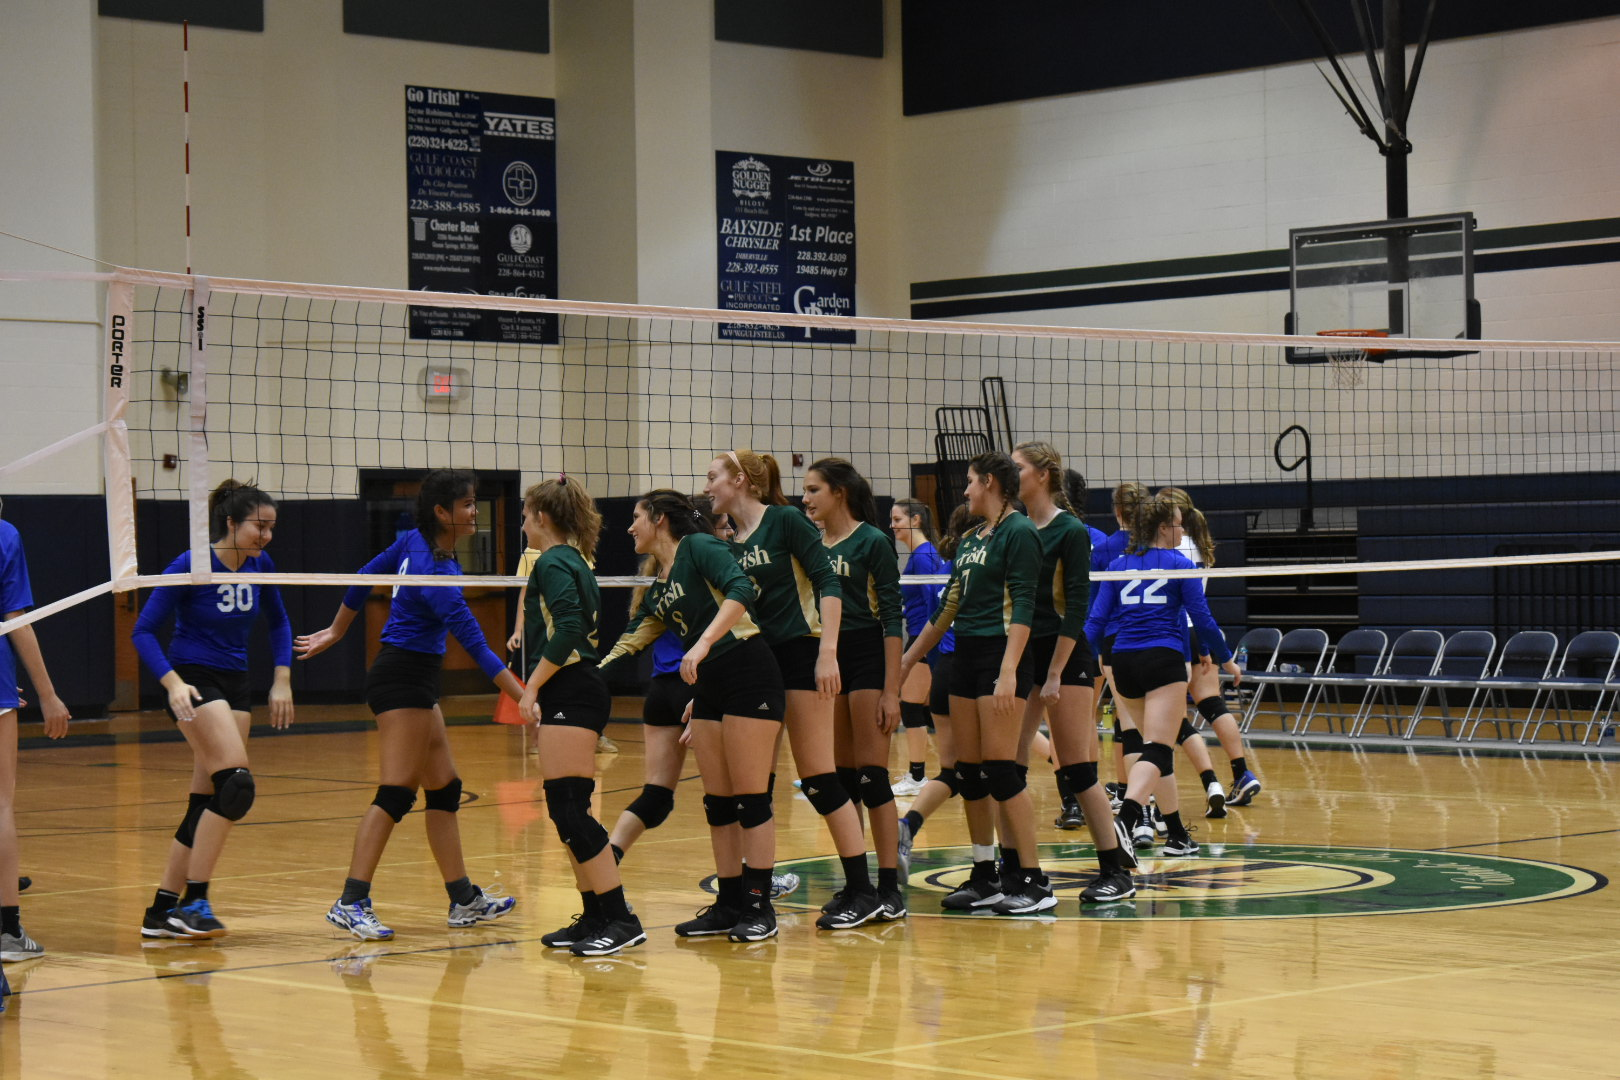 Lady Irish Volleyball Team defeats Sacred Heart Crusaders